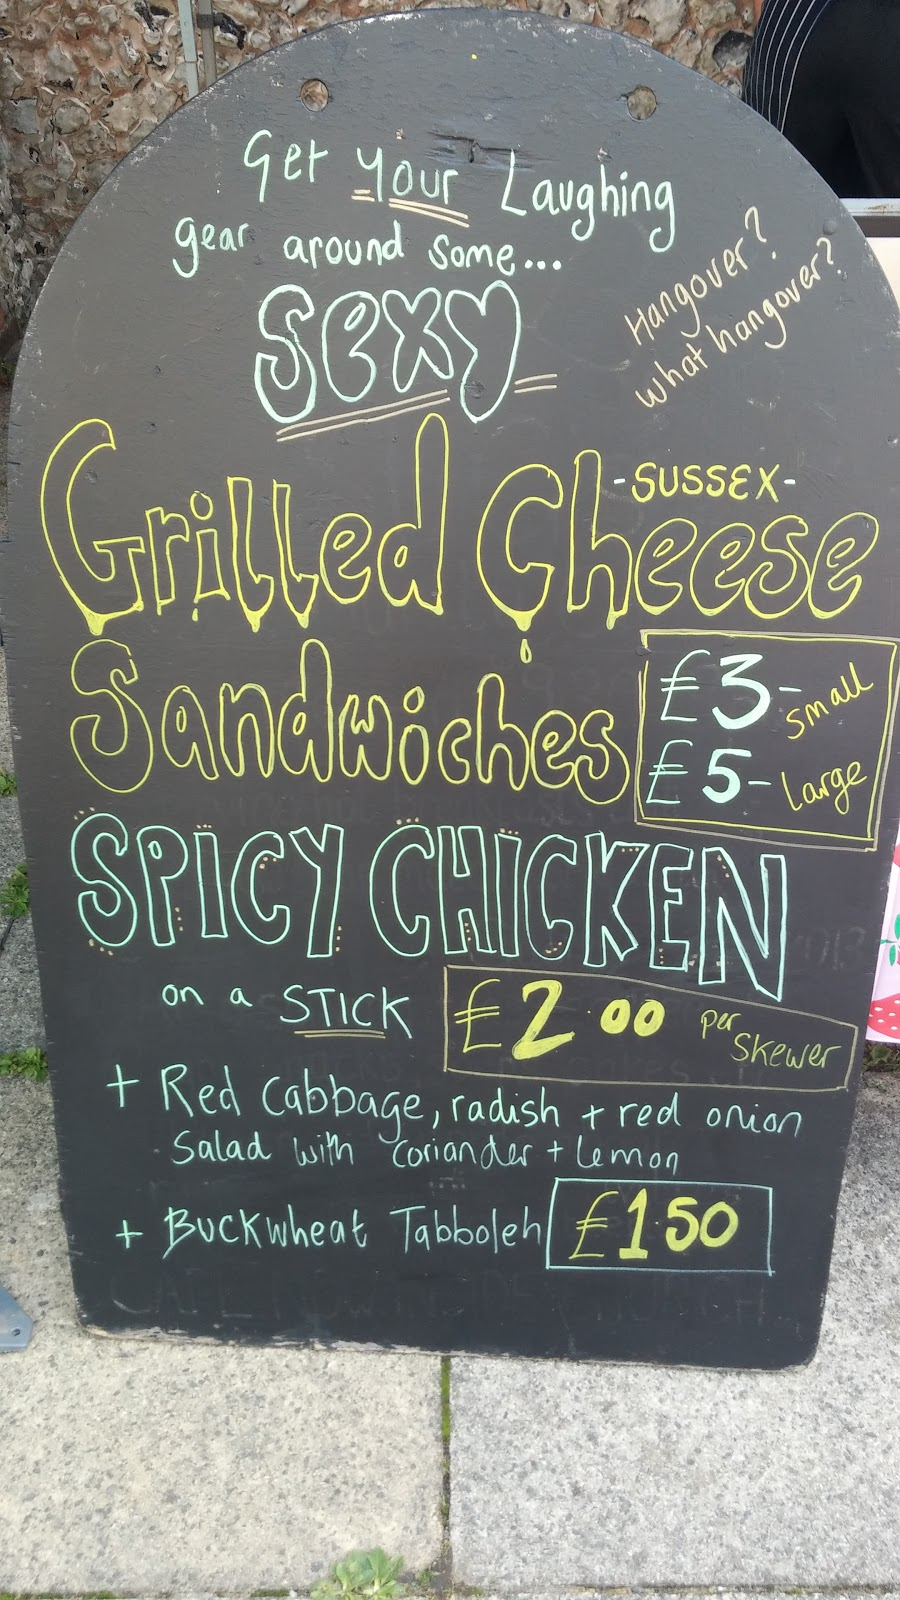 Street Food Stall Sign Featuring Grilled Cheese Sandwiches and Spicy Chicken